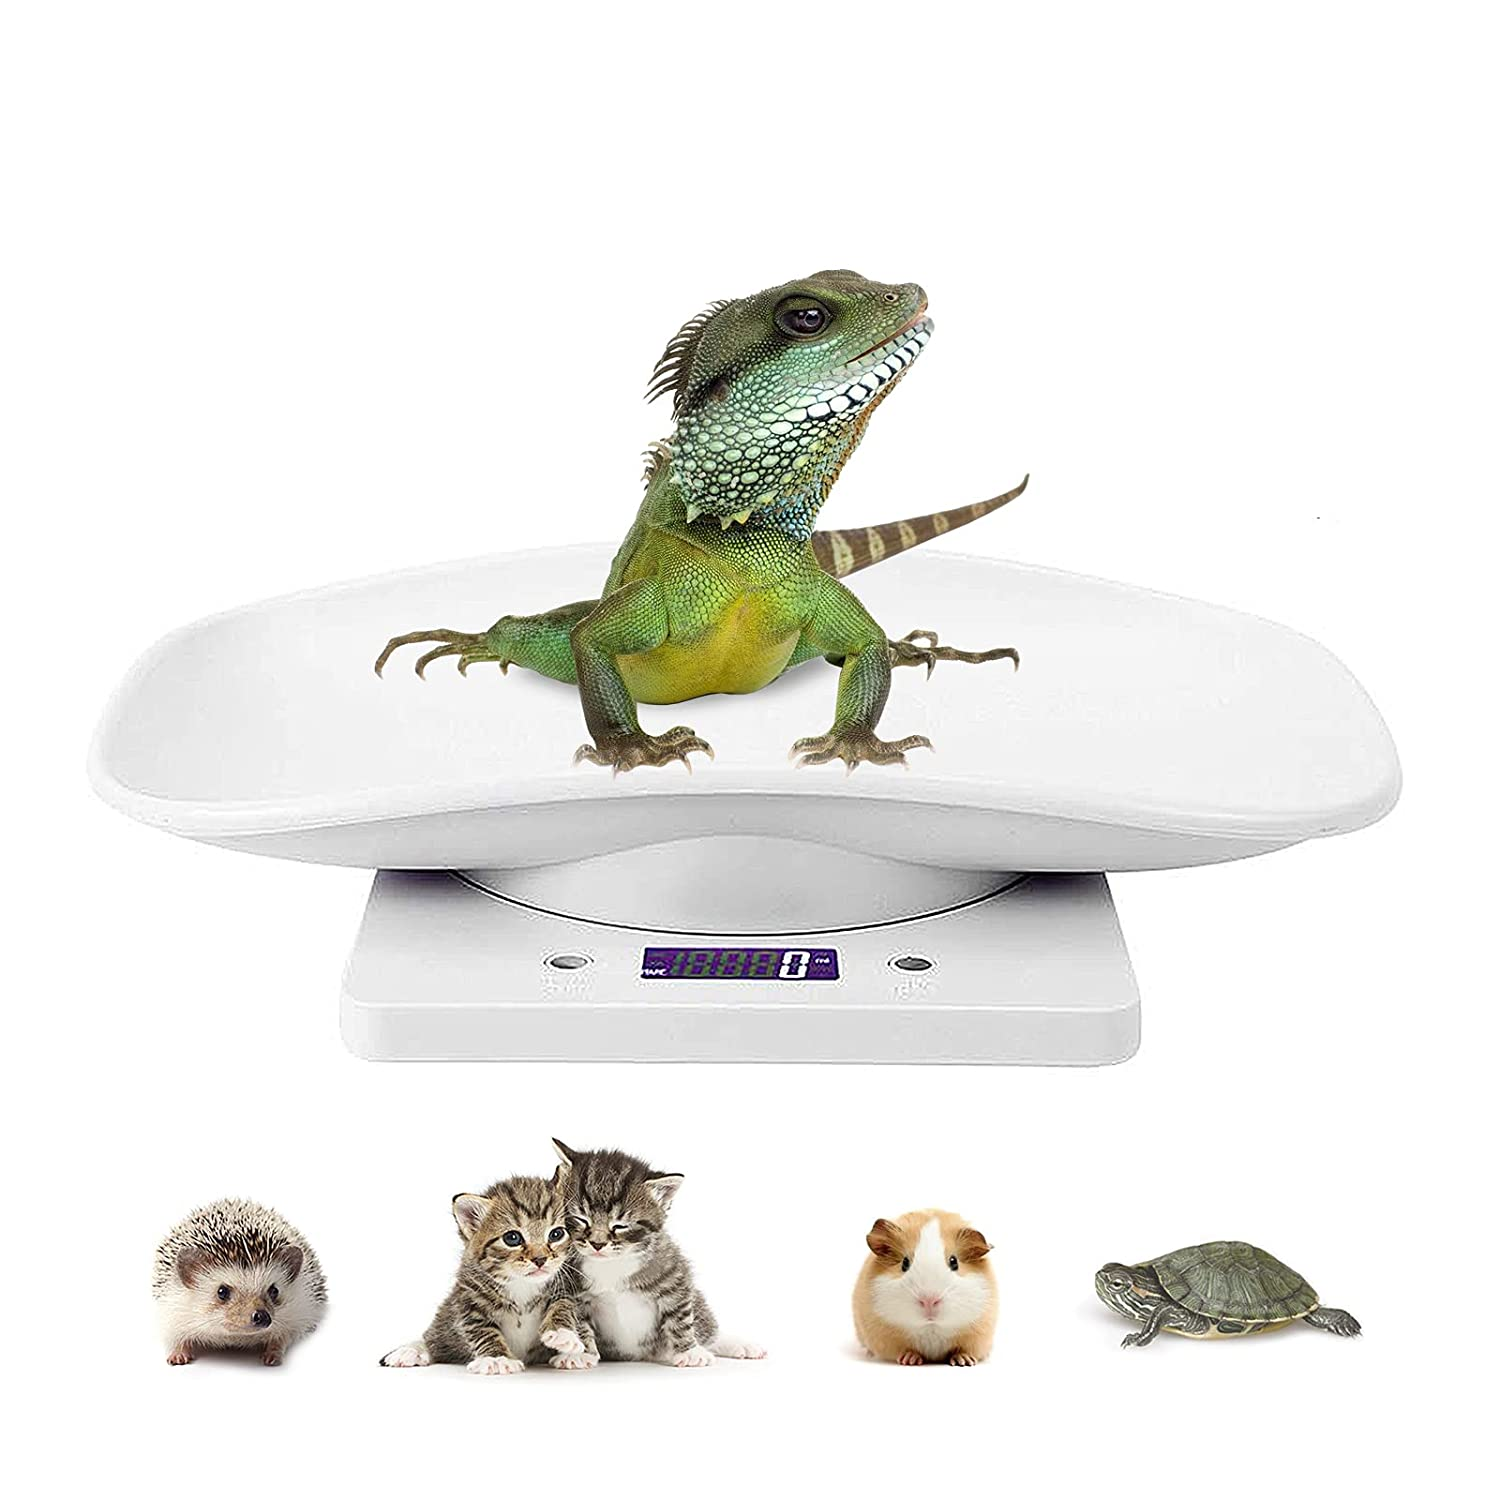 Digital Scale Pet LCD Electronic Weighing Scale, Kitchen Food Scale,Mini Precision Grams Weight Balance Scale with High Precision g/ml/oz/lb for Dog/Cat/ Hamster/Tortoise/ Lizard Small Animals